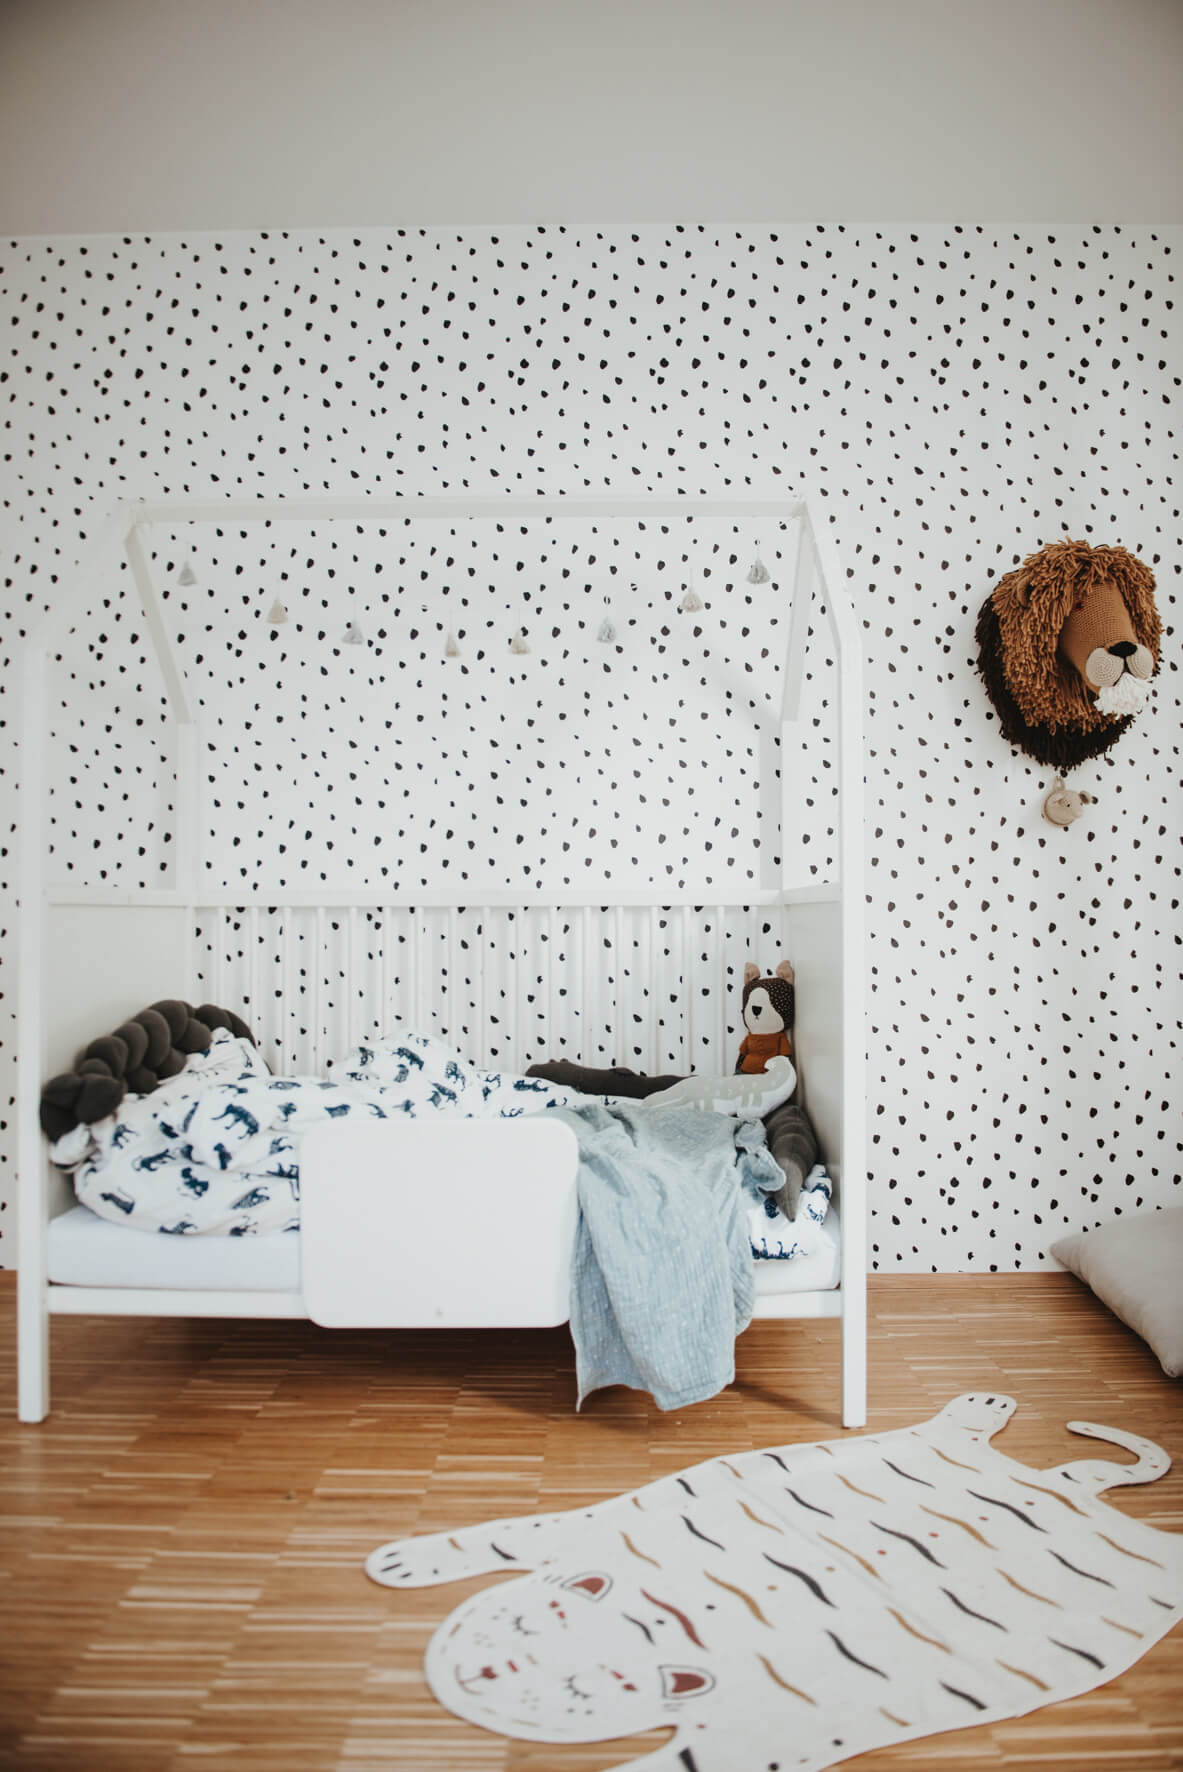 Eclectic dots removable wallpaper in minimal boys room interior